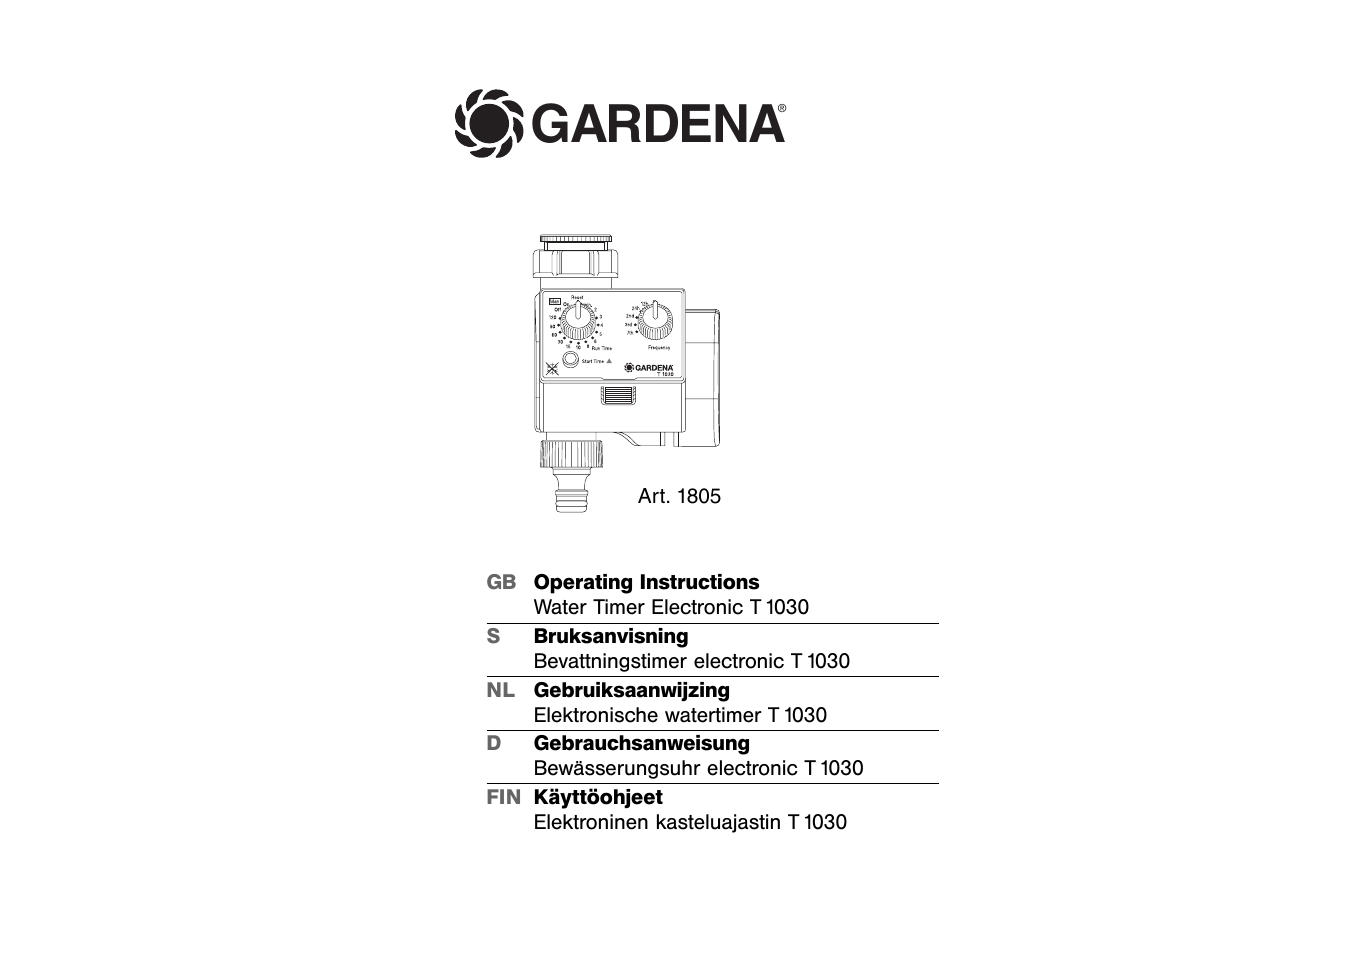 gardena water timer electronic t 1030 user manual 11 pages. Black Bedroom Furniture Sets. Home Design Ideas